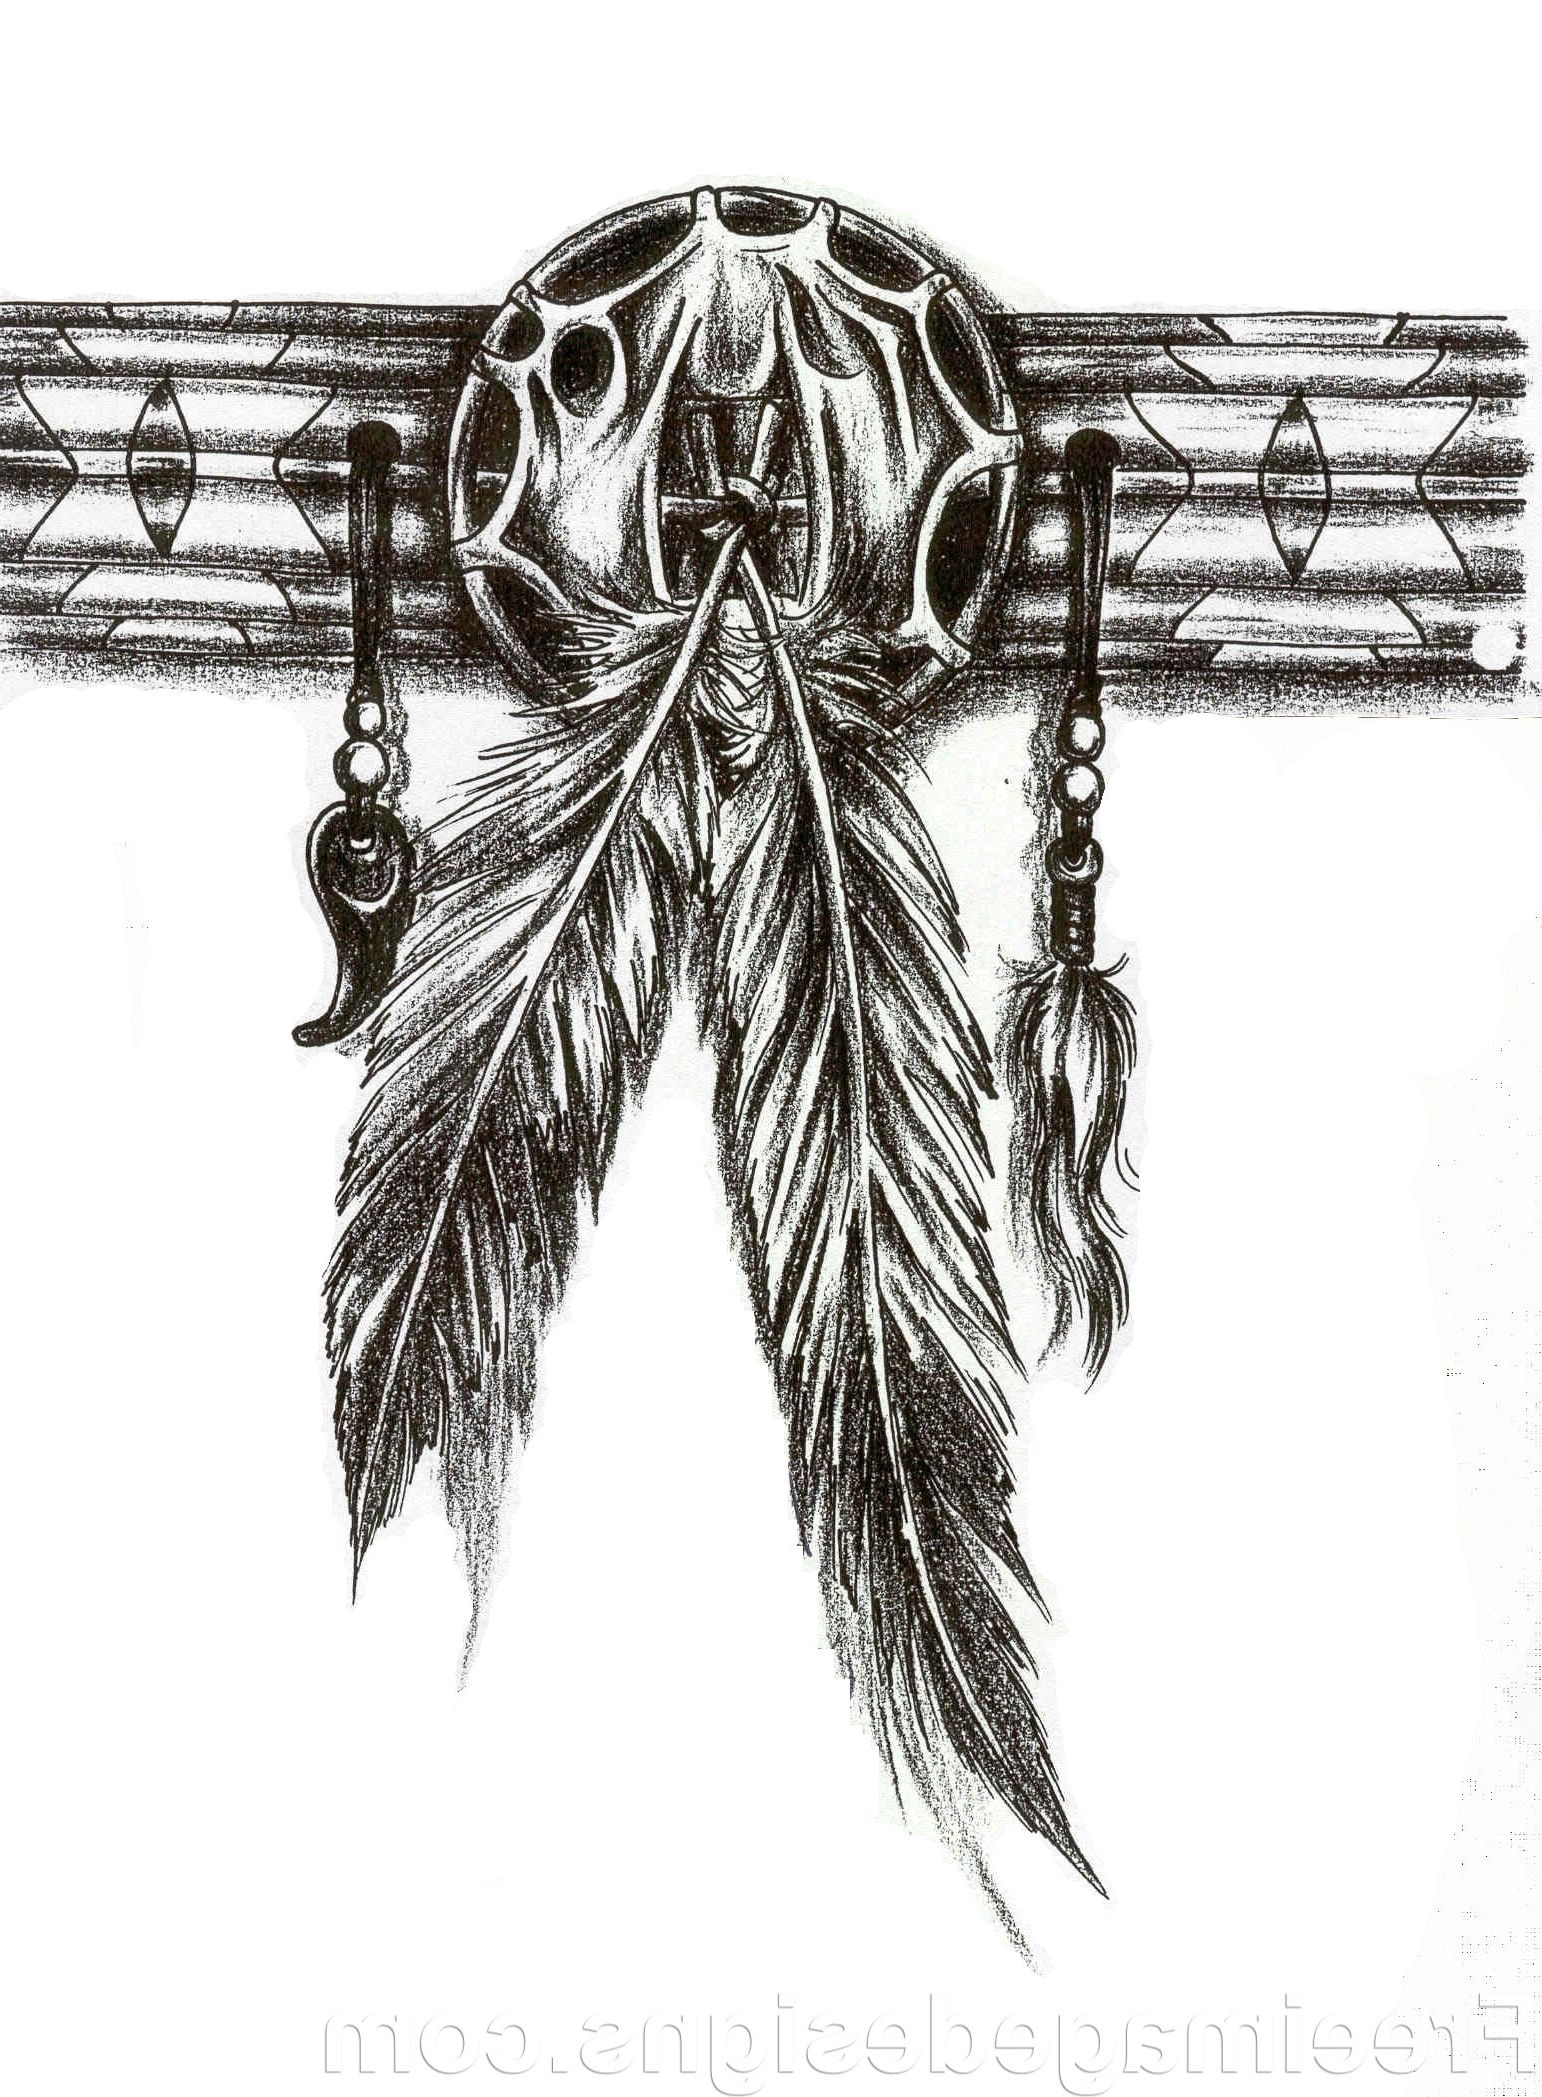 Native American Tribal Tattoo Designs Native American Designs Archives Native American Tattoos Indian Feather Tattoos Native American Tattoo Designs